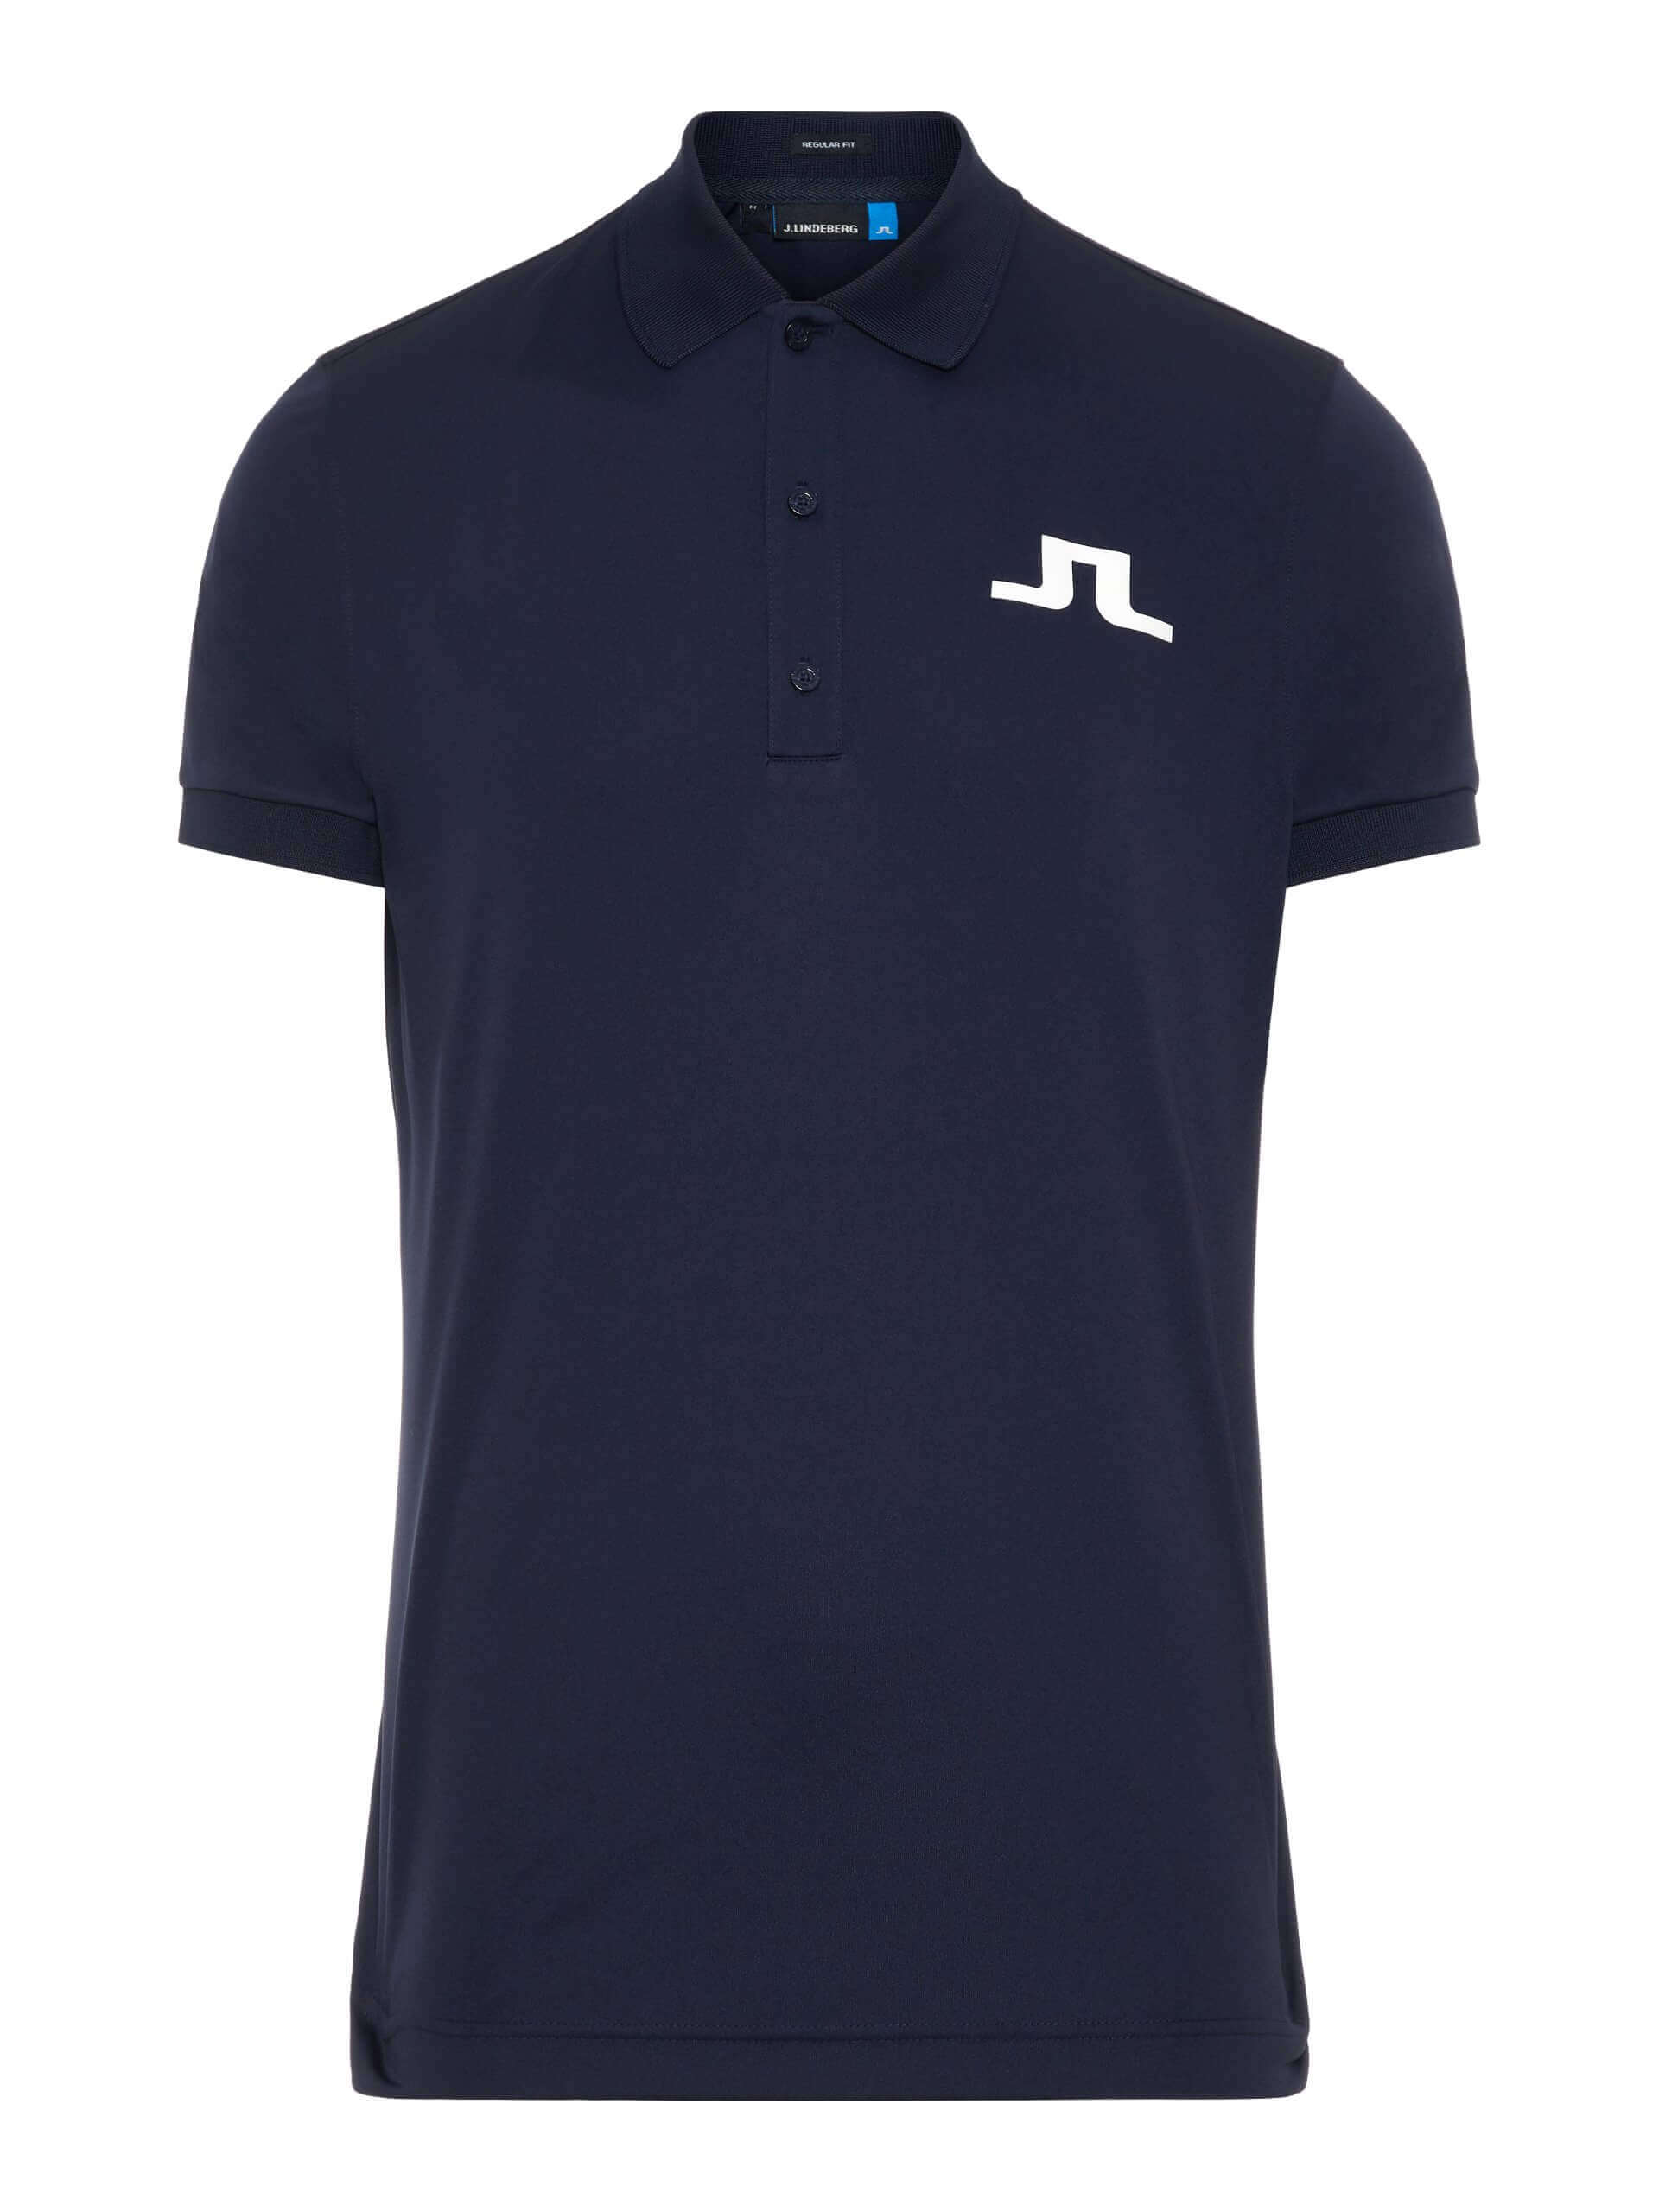 J.Lindeberg Big Bridge TX Jersey in Navy